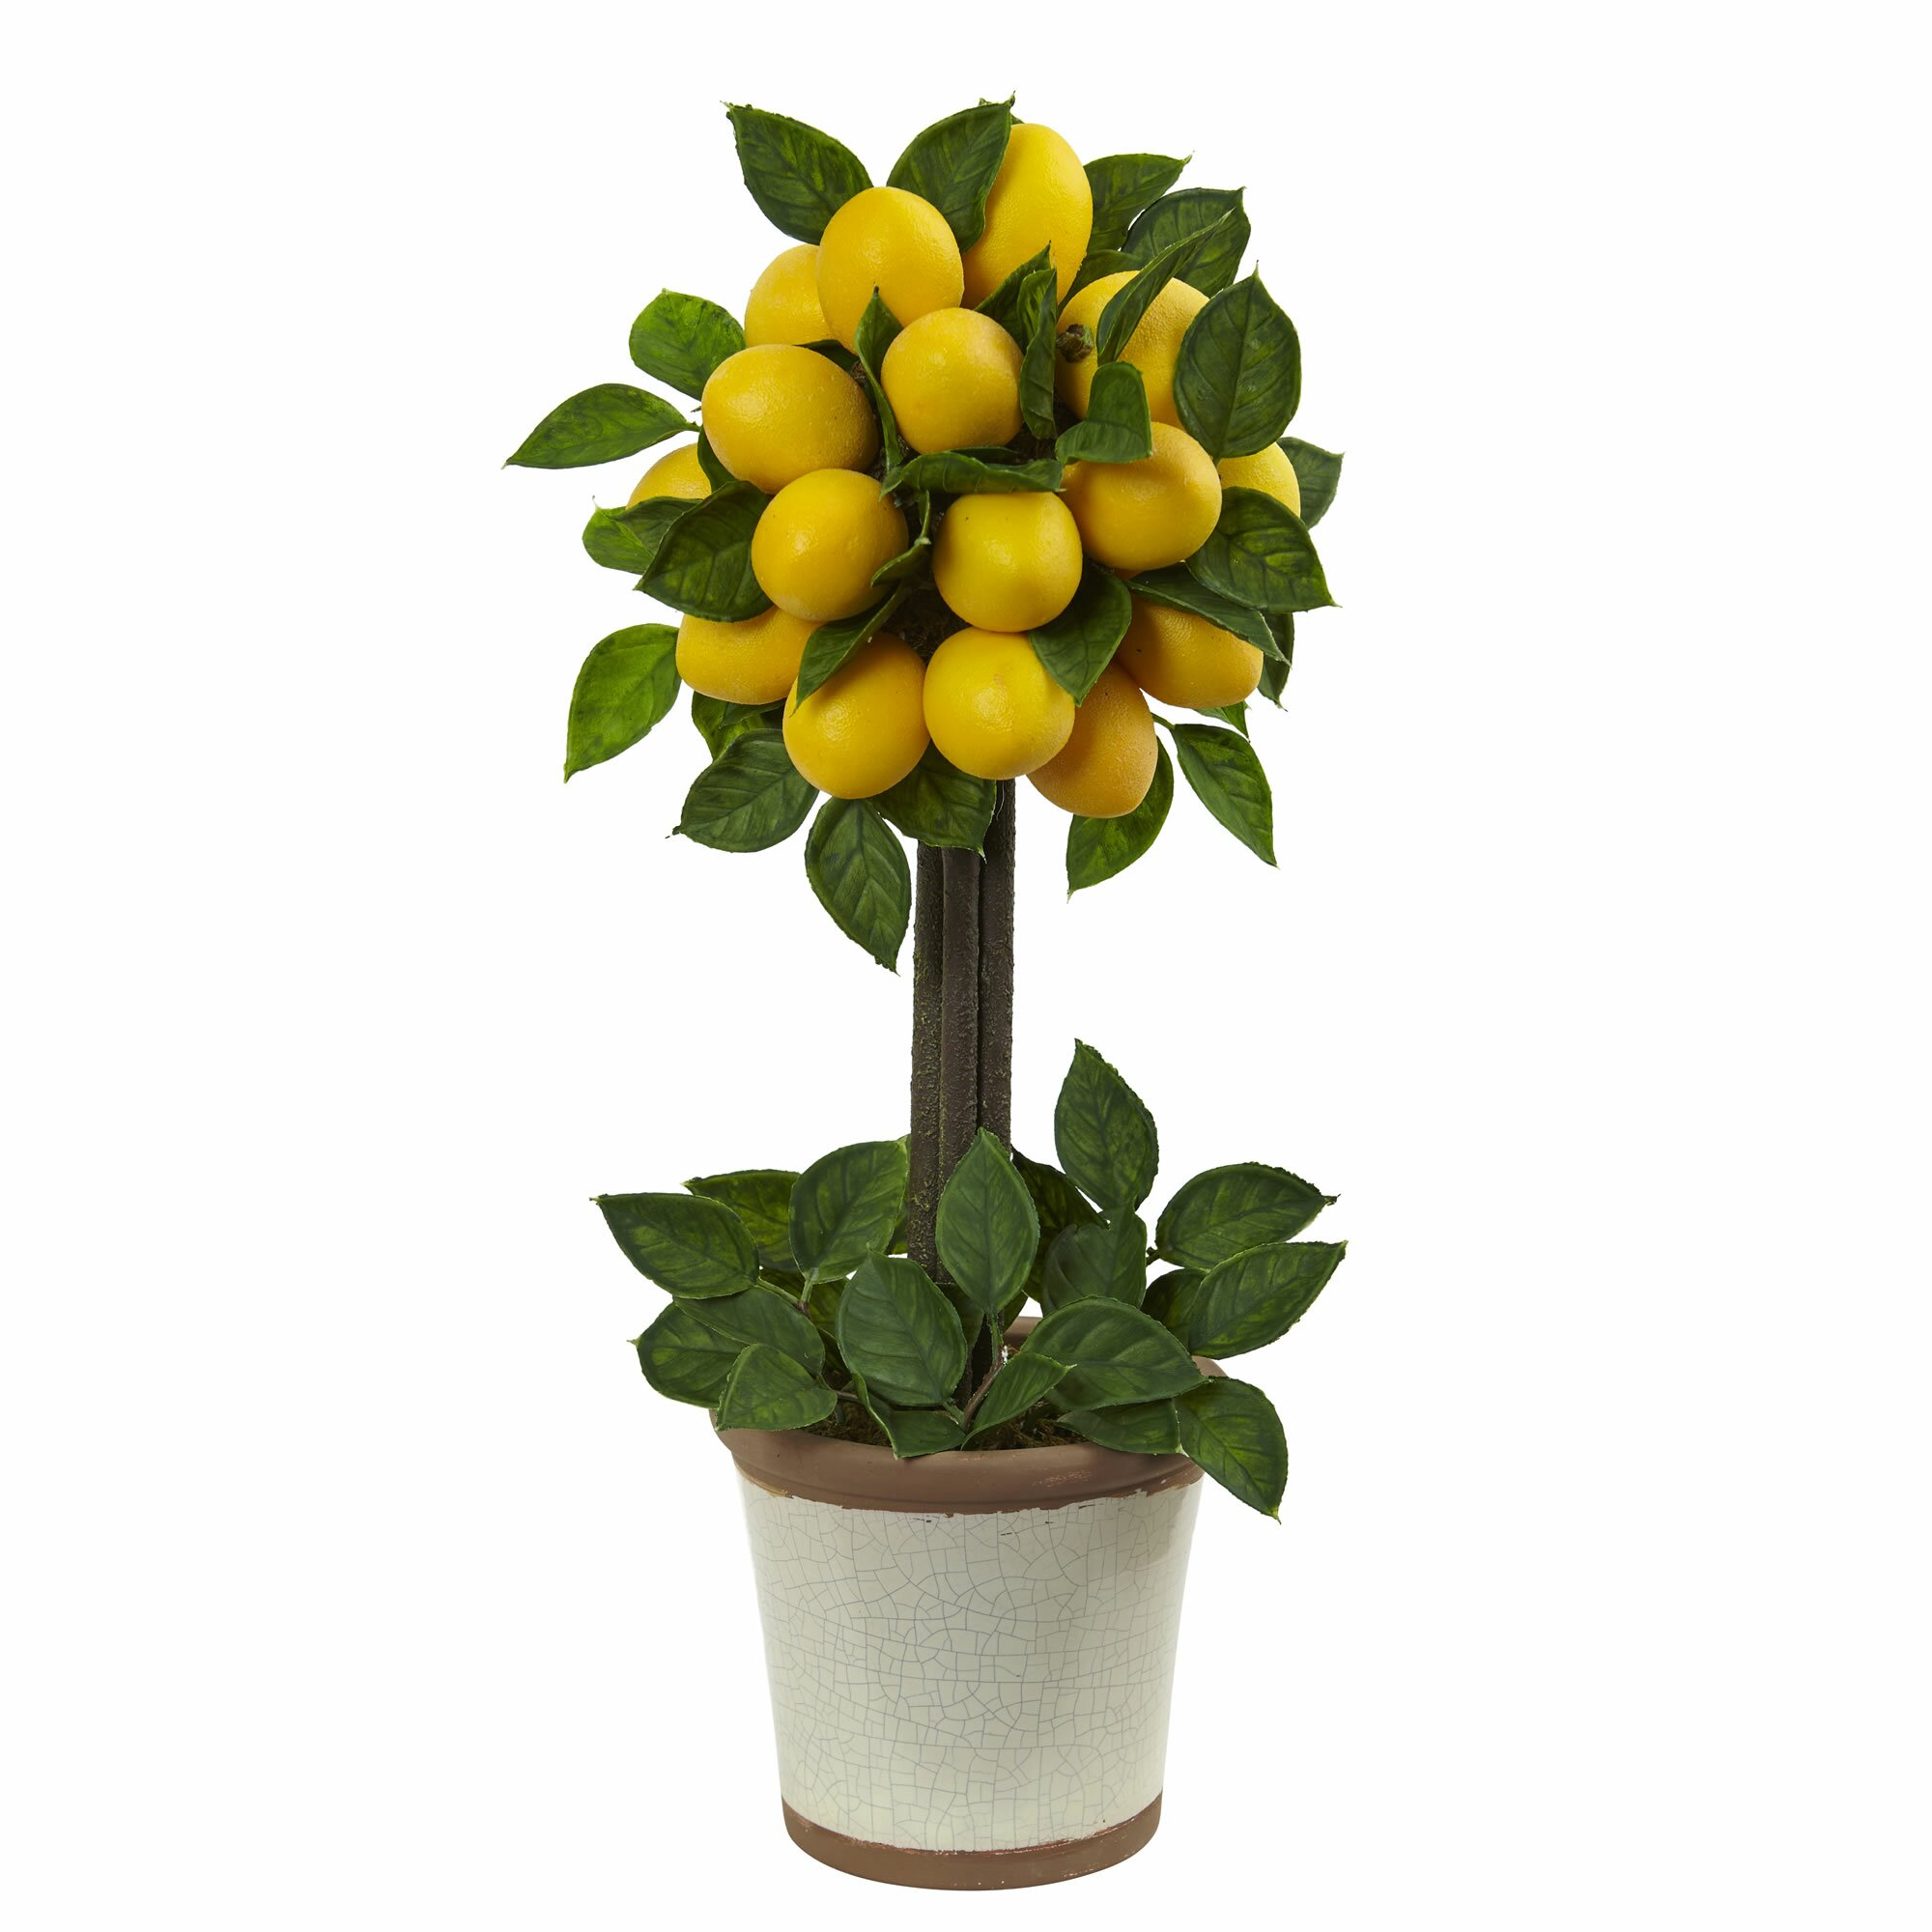 Lemon Kitchen Decor At Target: Nearly Natural Lemon Ball Round Topiary Arrangement In